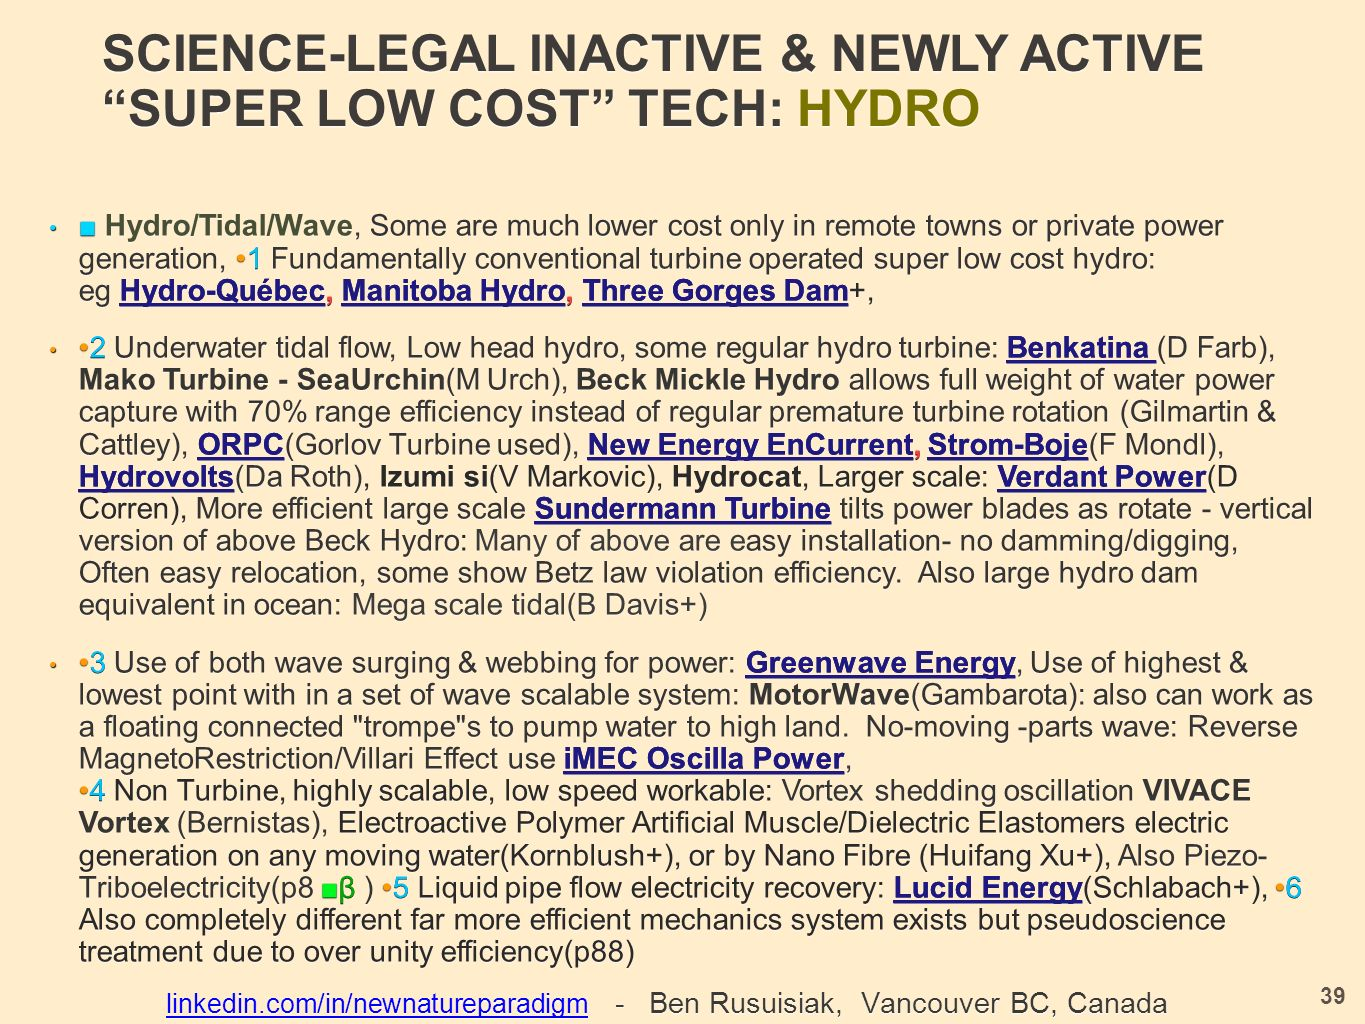 SCIENCE-LEGAL INACTIVE & NEWLY ACTIVE SUPER LOW COST TECH: HYDRO ■ Hydro/Tidal/Wave, Some are much lower cost only in remote towns or private power generation,1 Fundamentally conventional turbine operated super low cost hydro: eg Hydro-Québec, Manitoba Hydro, Three Gorges Dam +, ■ Hydro/Tidal/Wave, Some are much lower cost only in remote towns or private power generation, 1 Fundamentally conventional turbine operated super low cost hydro: eg Hydro-Québec, Manitoba Hydro, Three Gorges Dam+, 2 Underwater tidal flow, Low head hydro, some regular hydro turbine: Benkatina (D Farb), Mako Turbine - SeaUrchin(M Urch), Beck Mickle Hydro allows full weight of water power capture with 70% range efficiency instead of regular premature turbine rotation (Gilmartin & Cattley), ORPC (Gorlov Turbine used), New Energy EnCurrent, Strom-Boje (F Mondl), Hydrovolts (Da Roth), Izumi si(V Markovic), Hydrocat, Larger scale: Verdant Power (D Corren), More efficient large scale Sundermann Turbine tilts power blades as rotate - vertical version of above Beck Hydro: Many of above are easy installation- no damming/digging, Often easy relocation, some show Betz law violation efficiency.